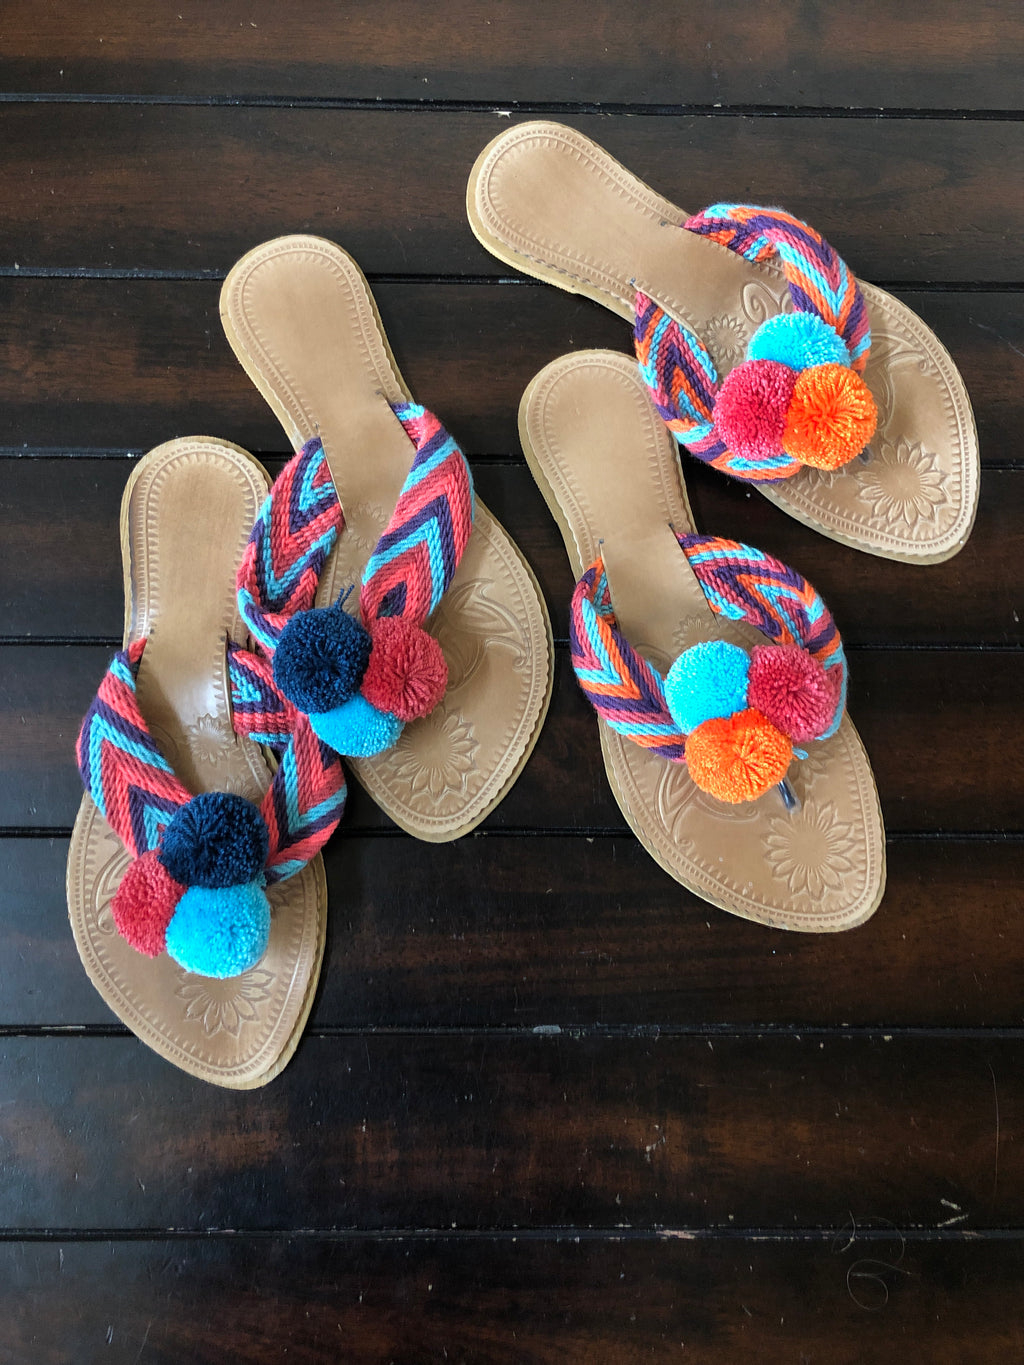 Colorful Handwoven Flip-Flops - Pom Pom Sandals SWP005